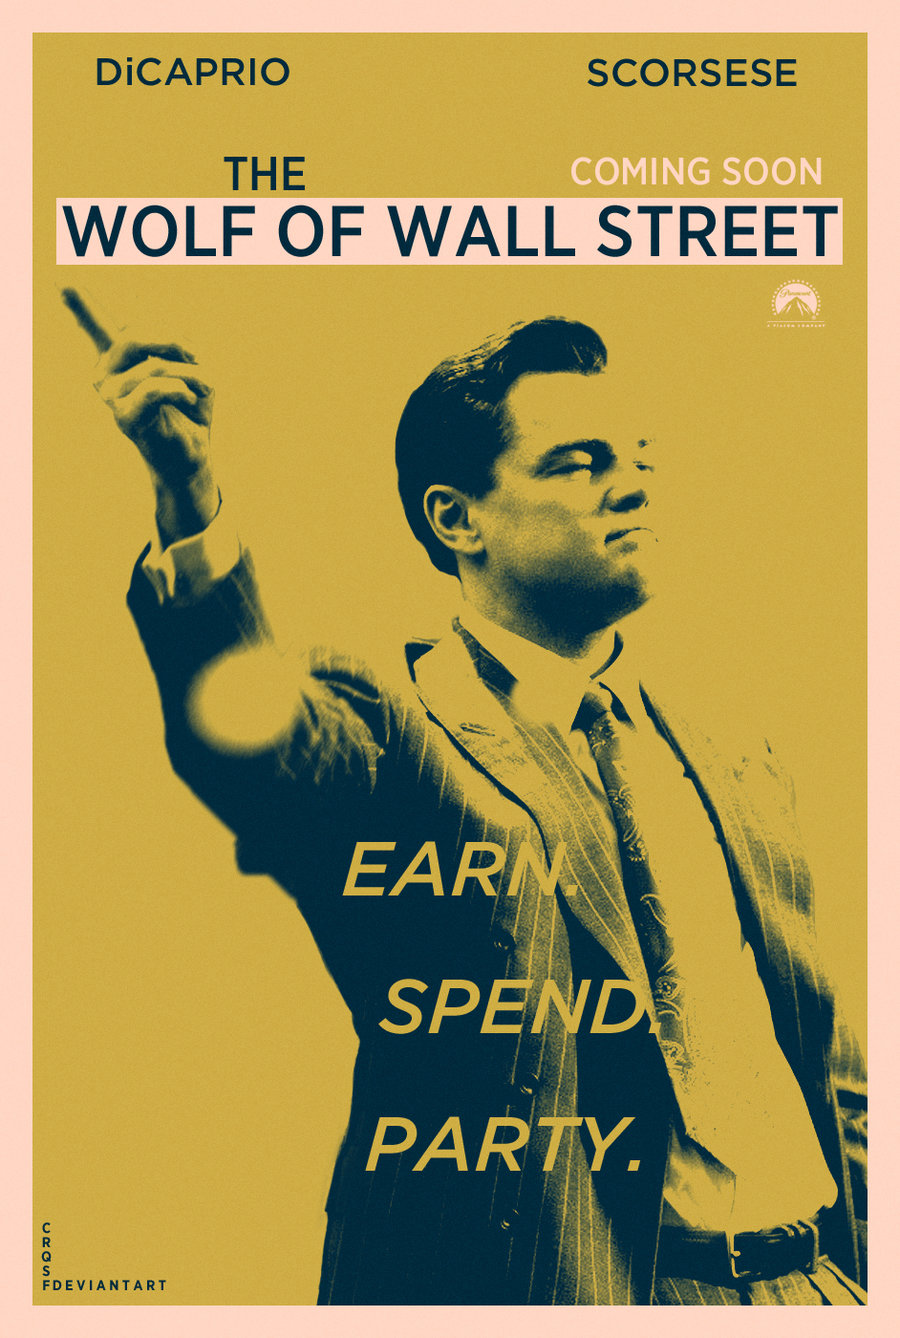 movie review the wolf of wall There's a sense of direction that only martin scorcese can bring, which the wolf of wall street shows in spades this 3-hour windup about tons of drugs, crudeness, sex and decadence somehow finds the fine line of taste, to retain an interest for its full run and welcome viewers into this hedonistic universe.